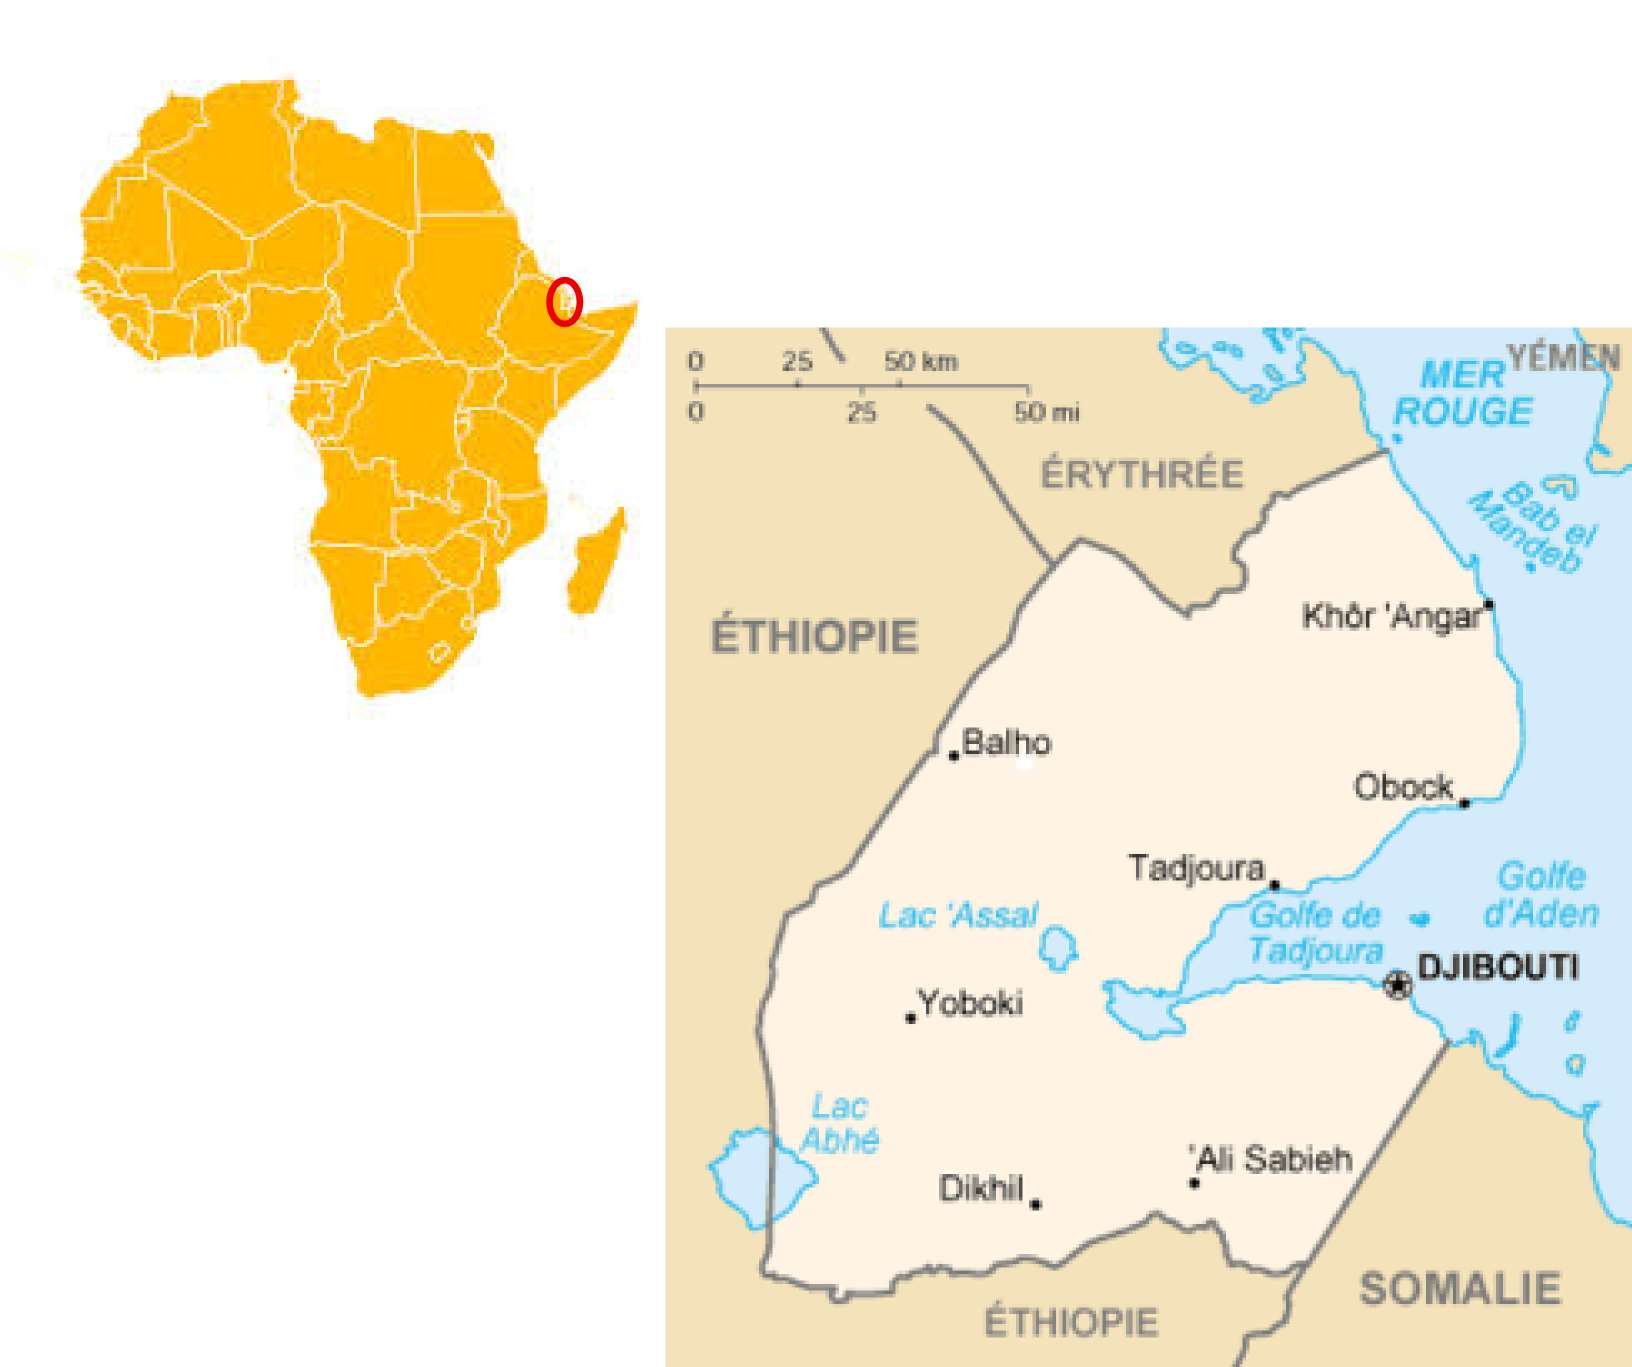 Why the name: Djibouti? | African Heritage